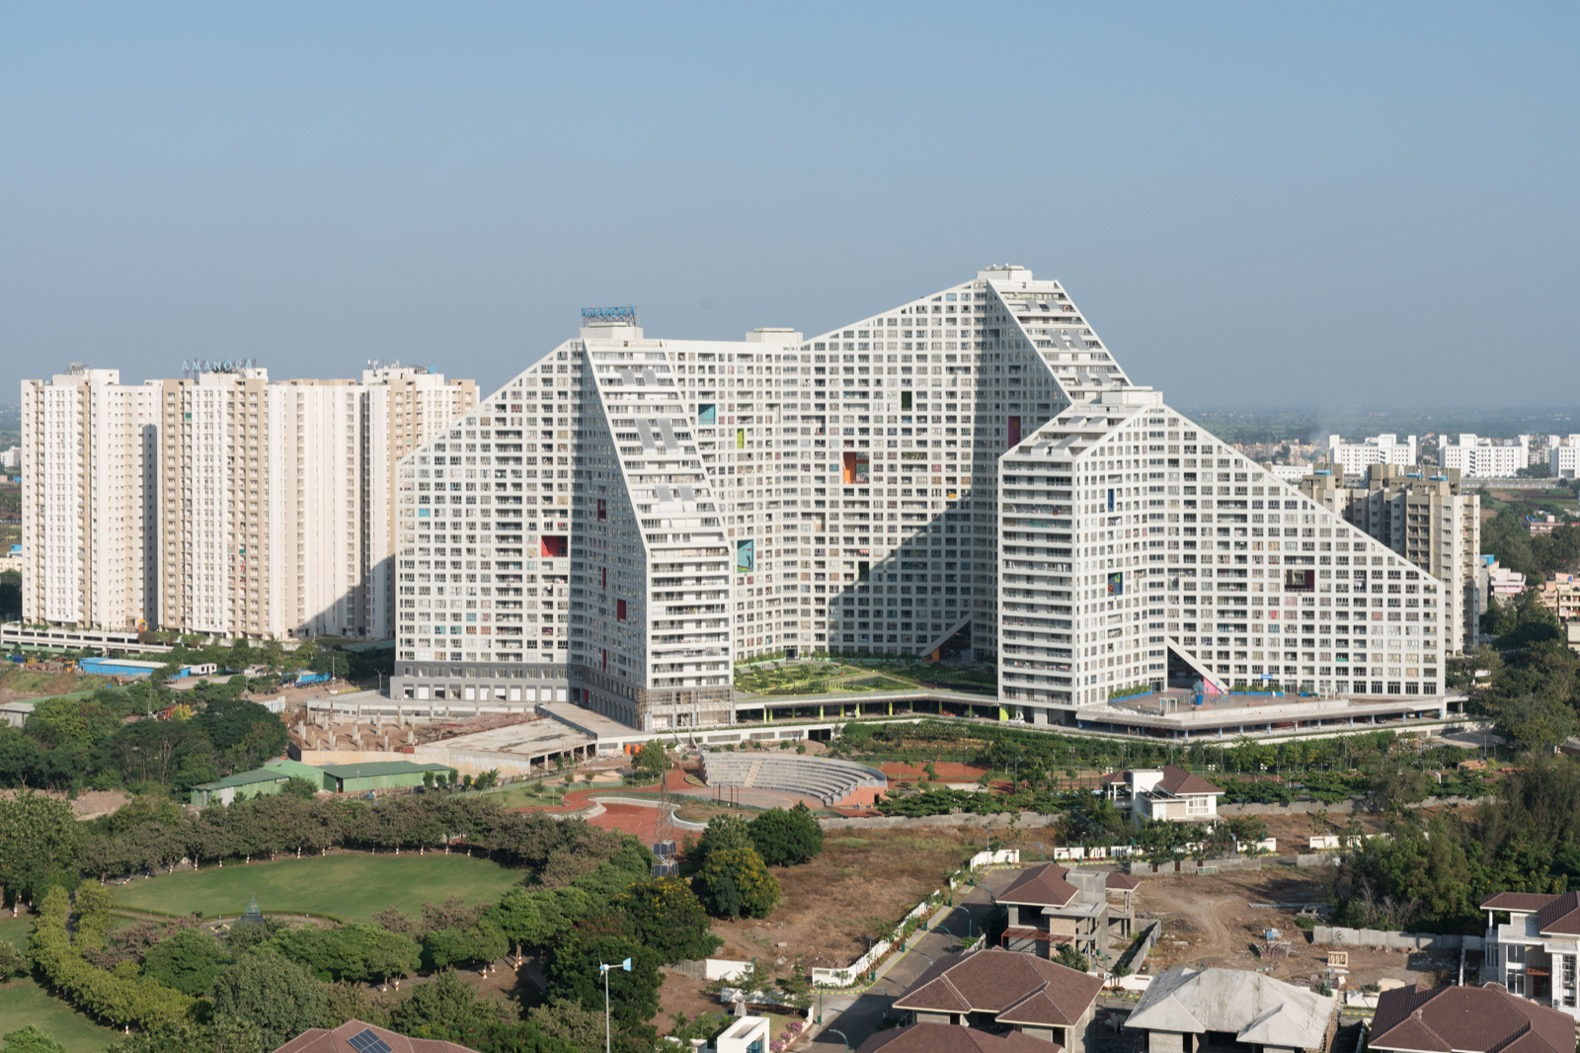 MVRDV completes massive, mountain-like vertical village for 5,000 residents in India